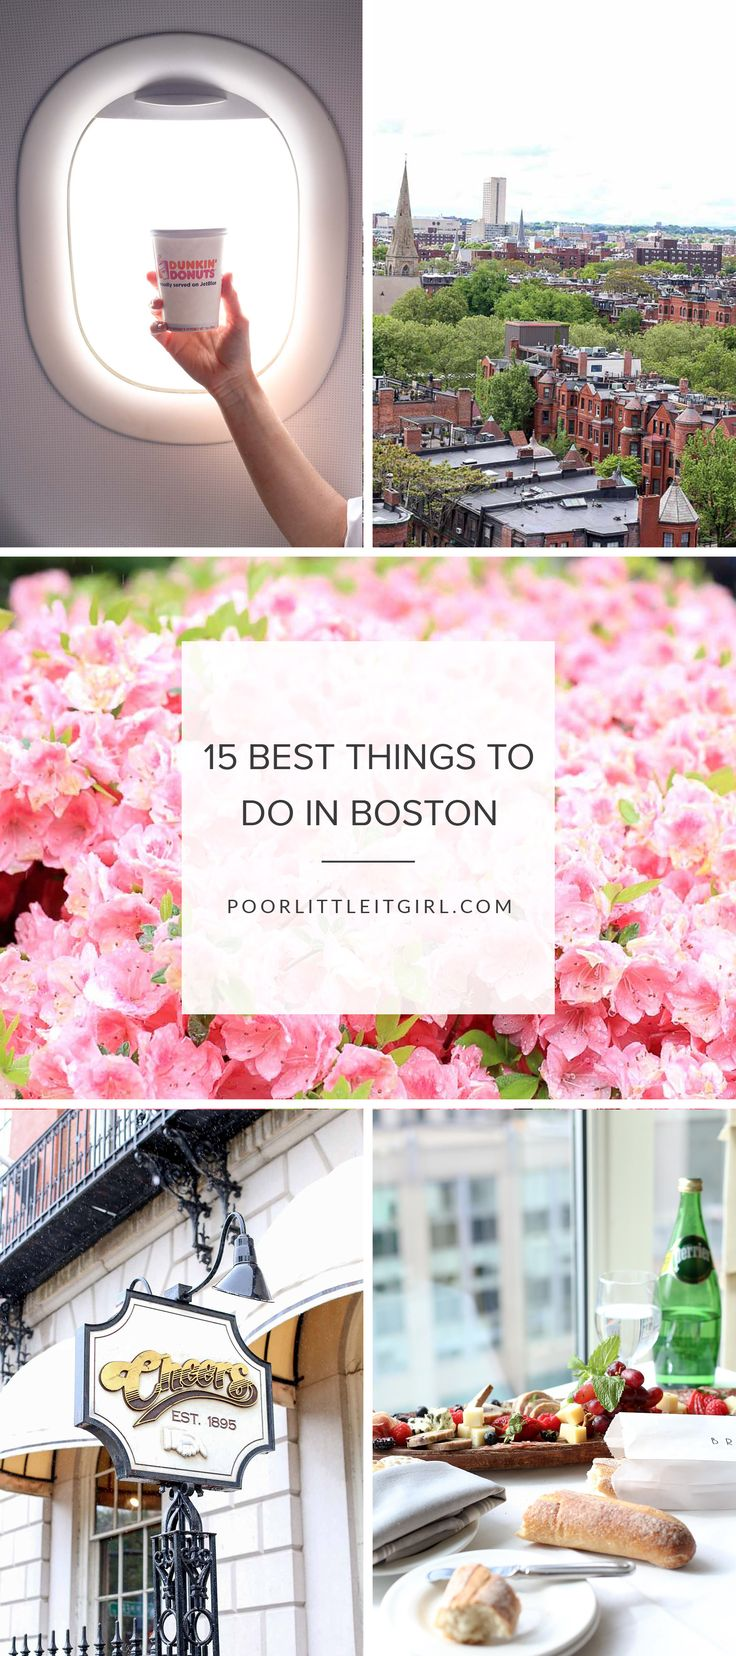 Thanks to JetBlue making their debut in Atlanta, Cathy took a trip up north to share the 15 Best Things To Do In Boston with a full Travel Recap!